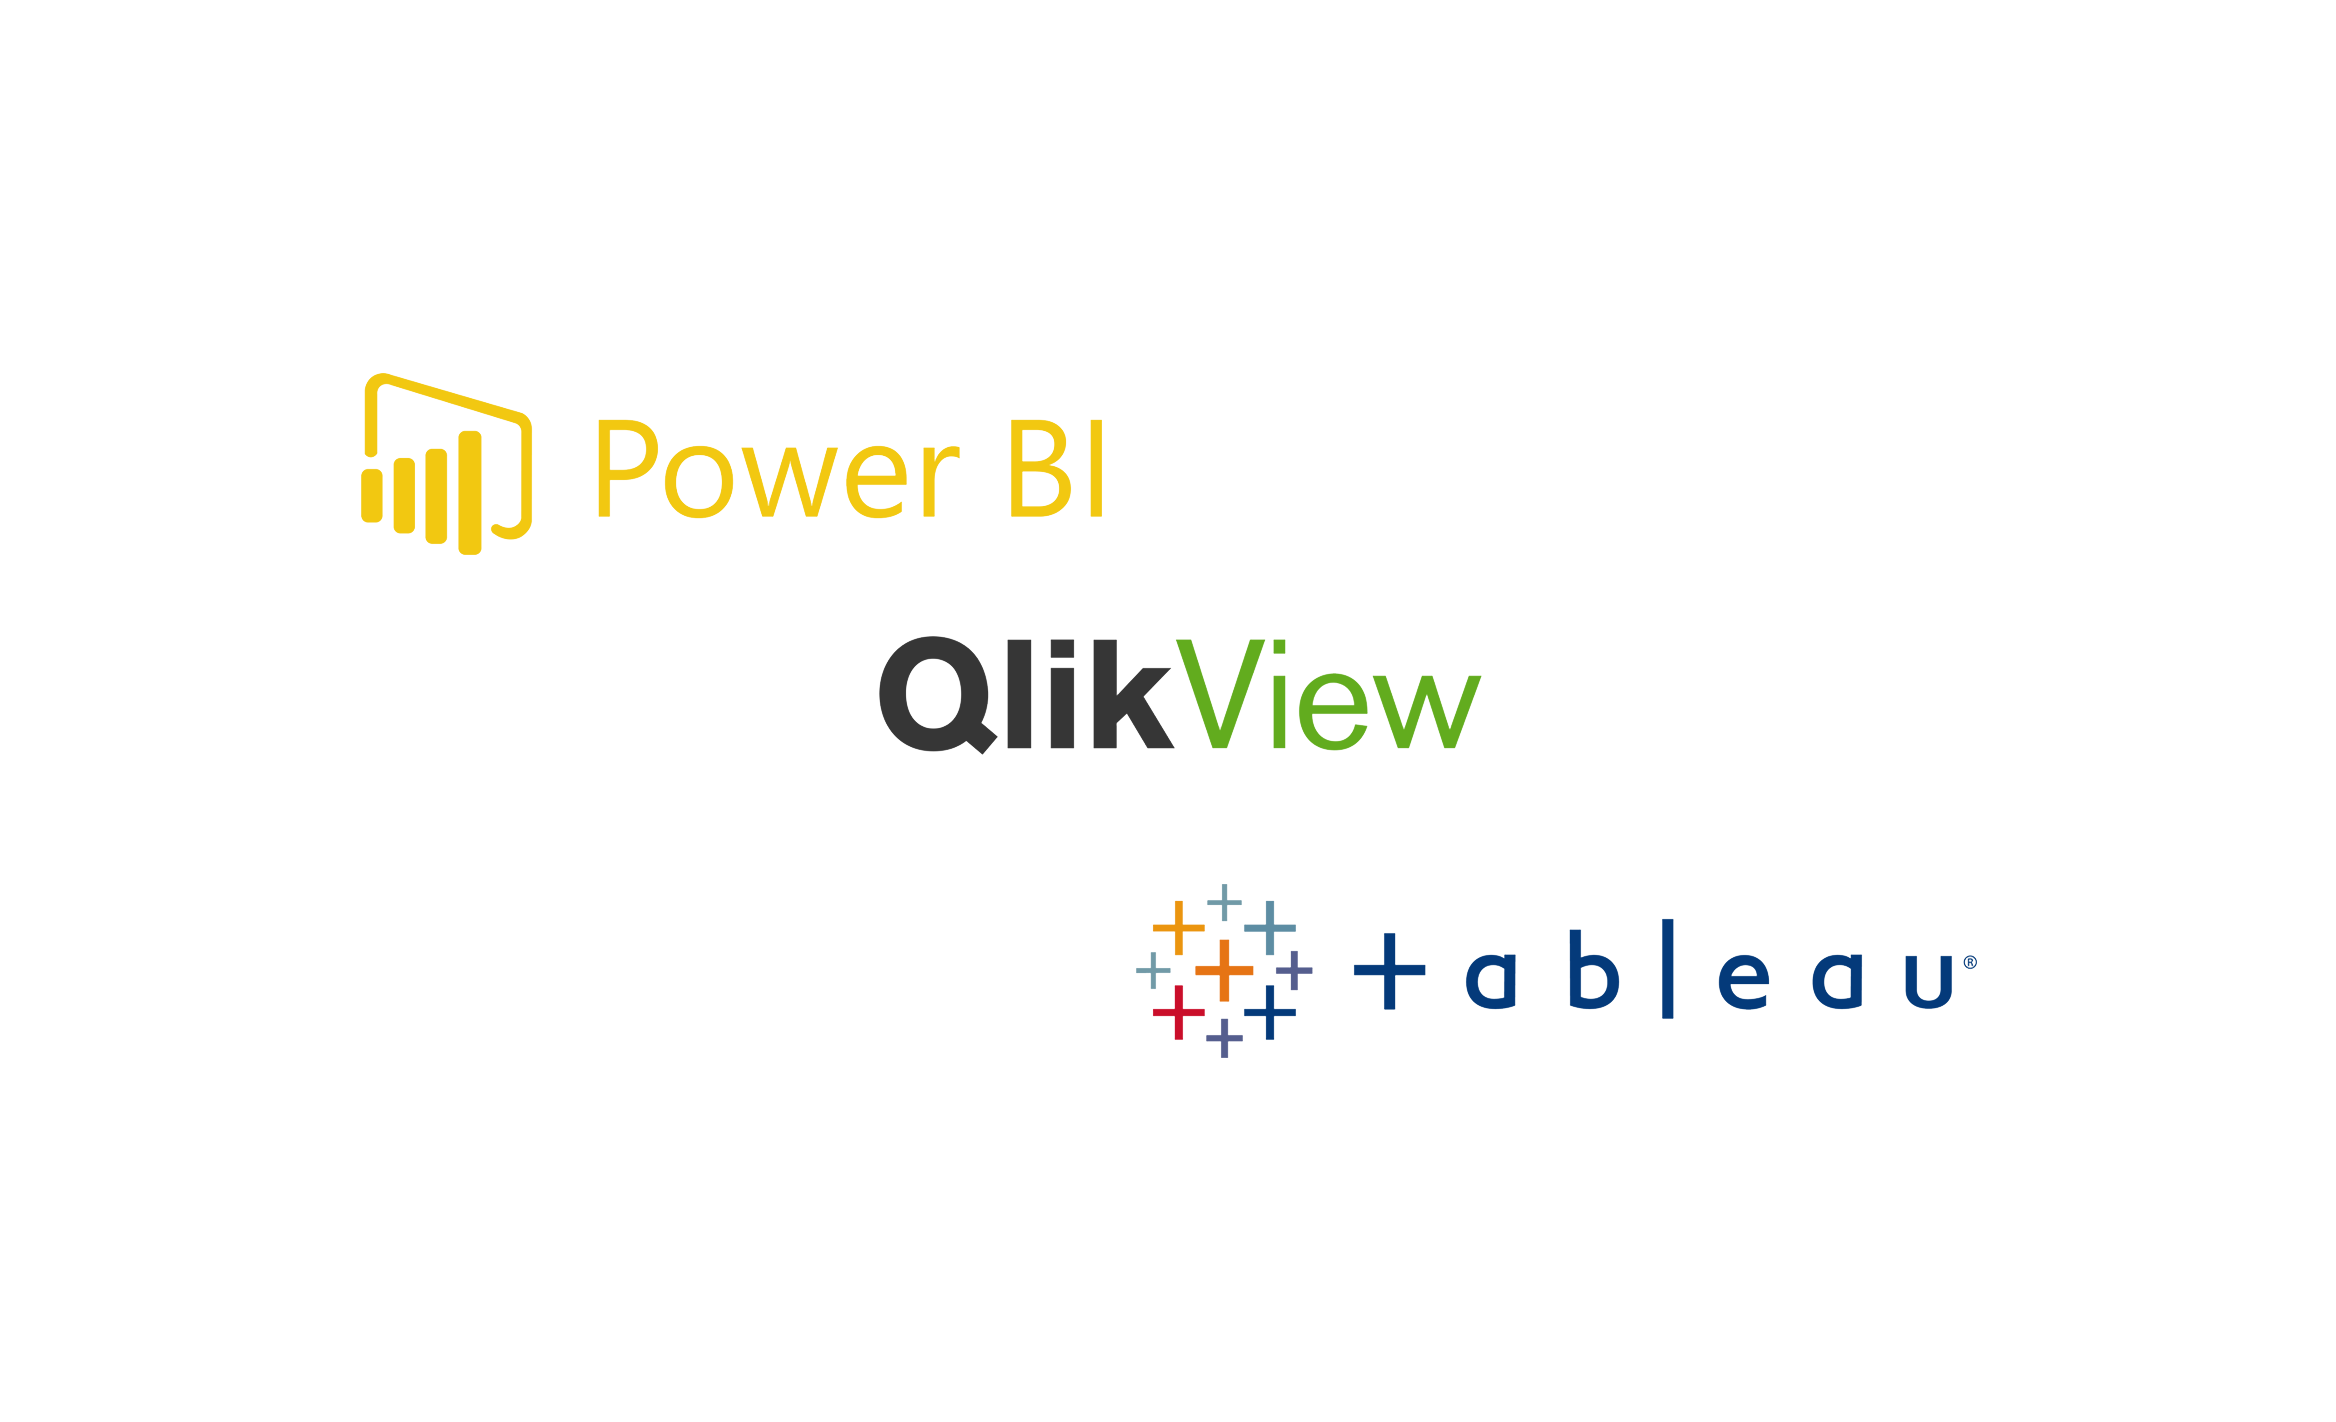 Cmotions | Power BI vs  Qlikview vs  Tableau – which data